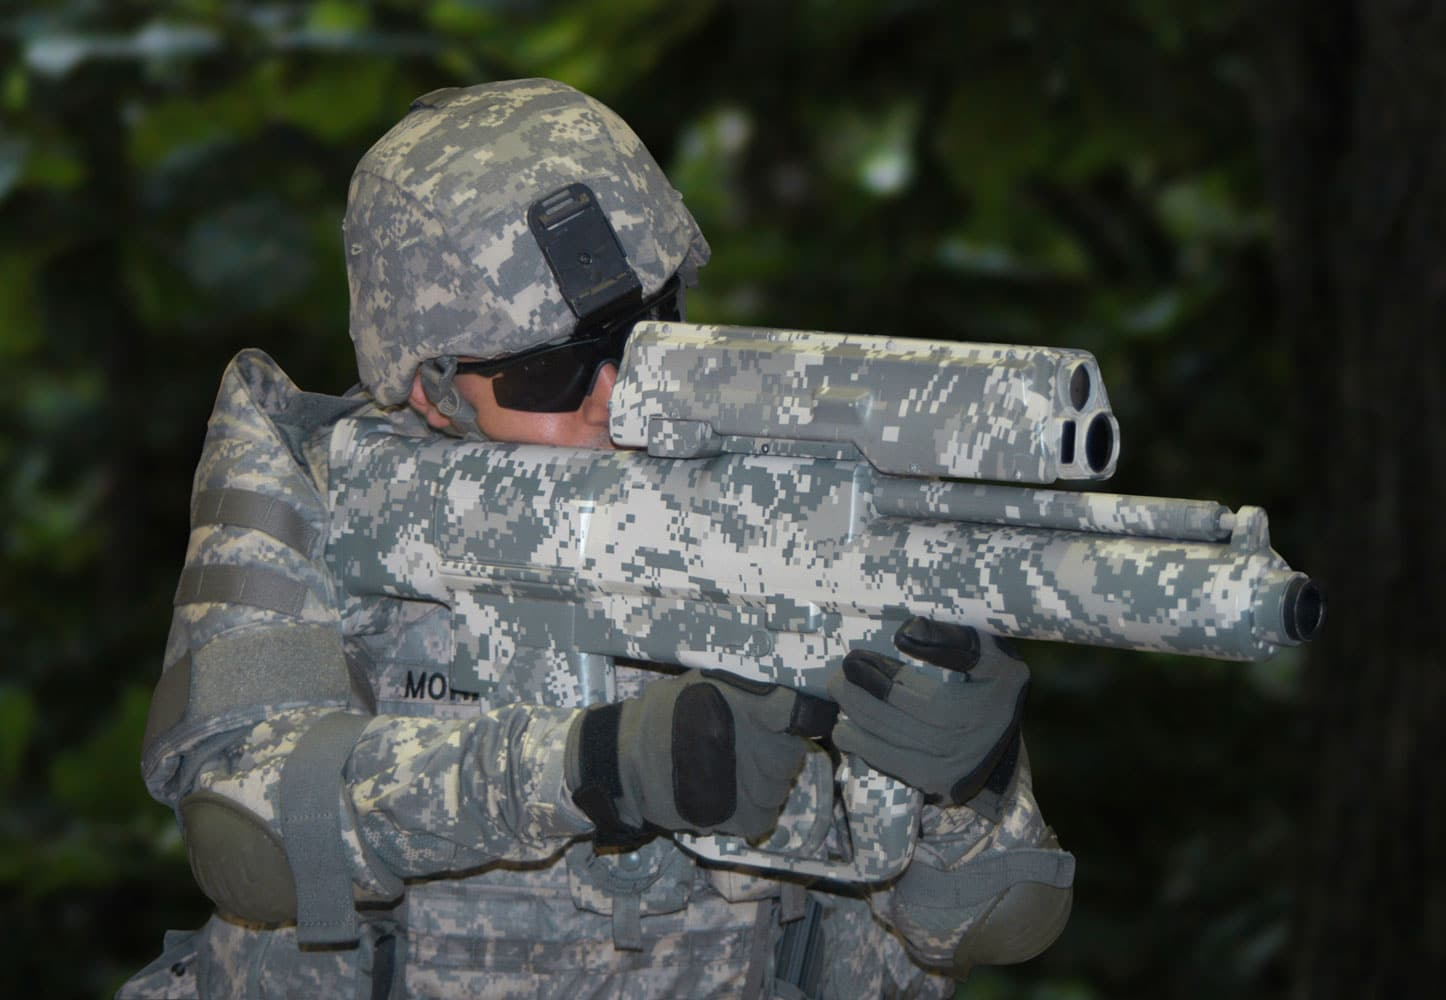 """The XM-25 Counter Defilade Target Engagement System is the Army's first """"smart"""" shoulder-fired weapon. It launches 25mm dual-warhead, low velocity, flat trajectory ammunition designed to explode over a target. PEO Soldier unveils lighter, more lethal weapons systems."""